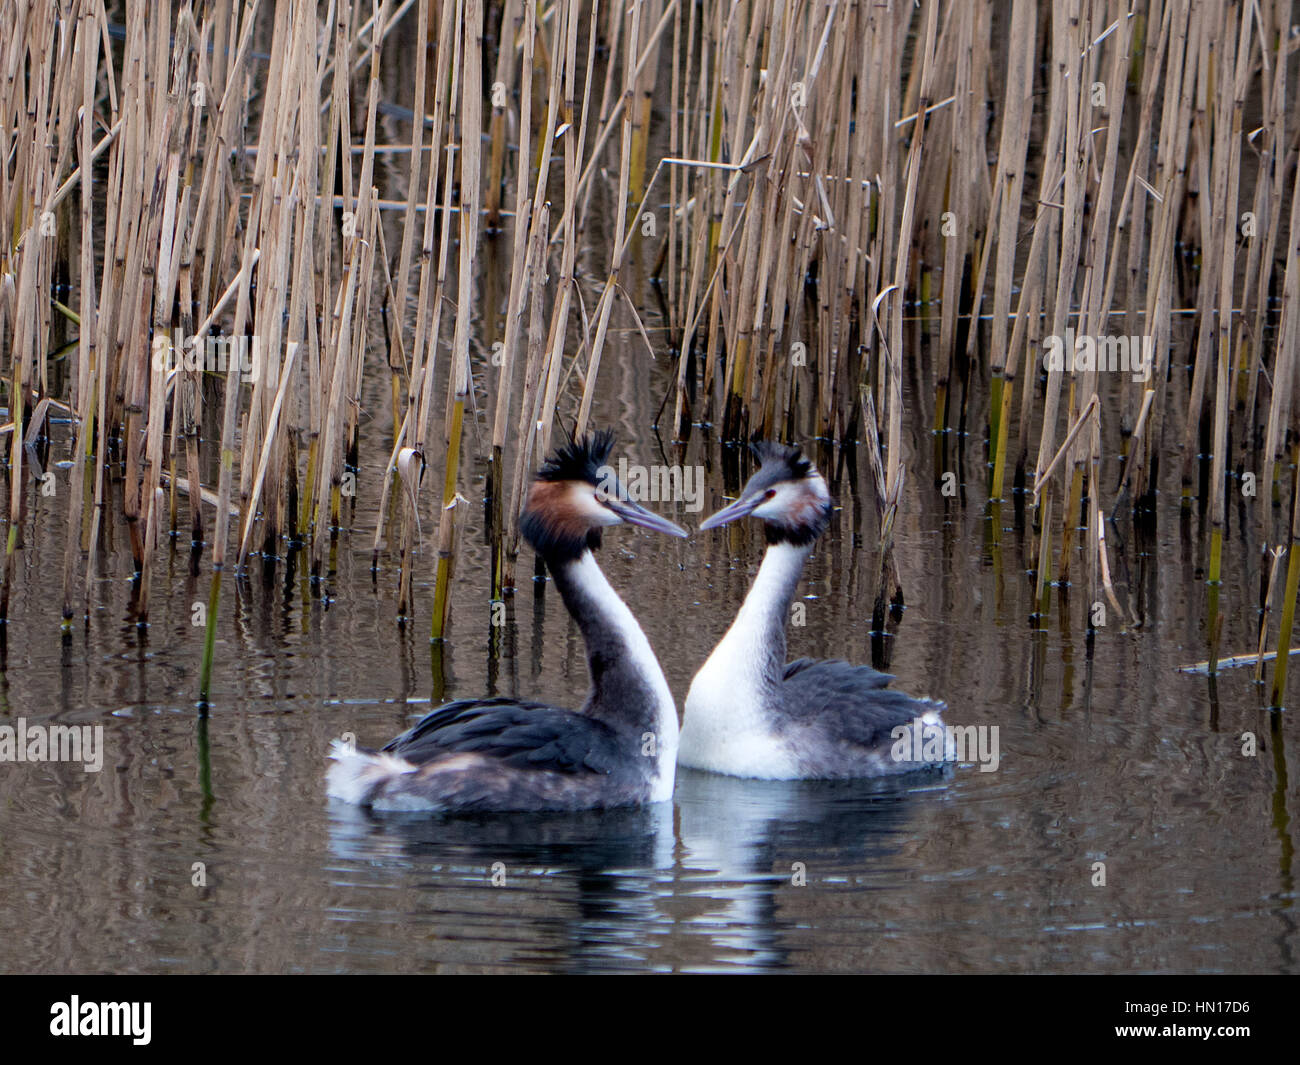 A pair of Great Crested Grebe's make a love heart shape with their necks and beaks while swimming on a reservoir - Stock Image